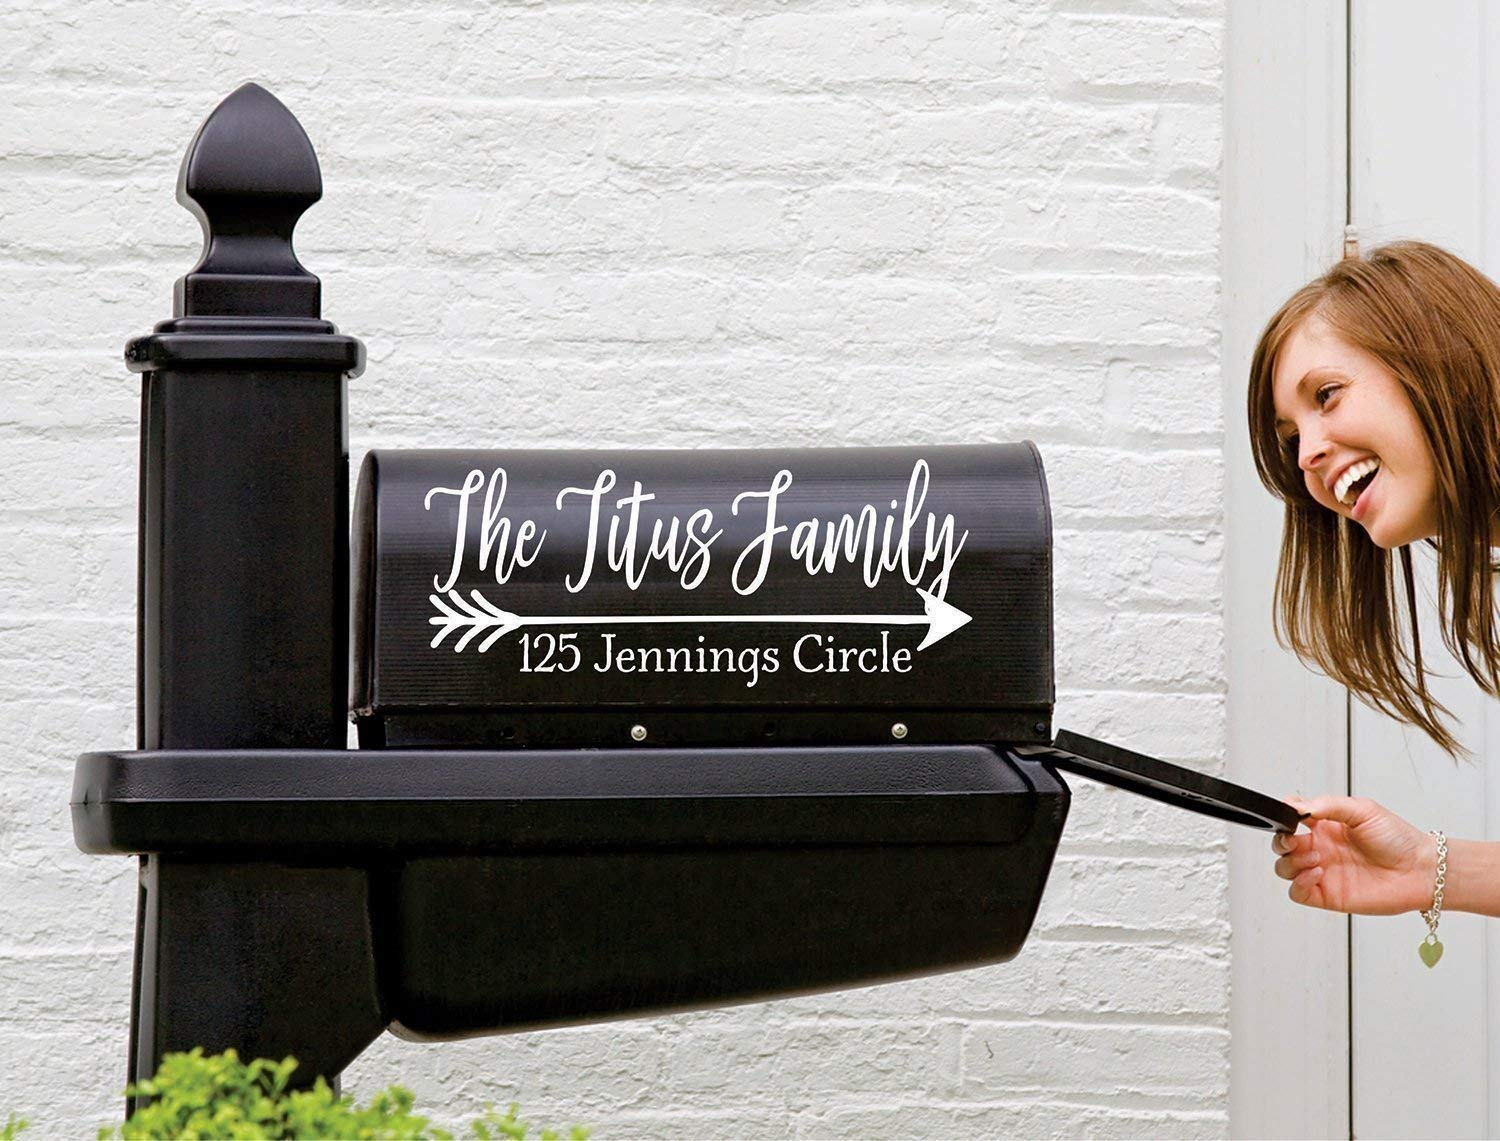 Name Decal for Mailbox Personalized Mailbox Decal Mailbox Number Sticker Set of 2 Farmhouse Mailbox Decal